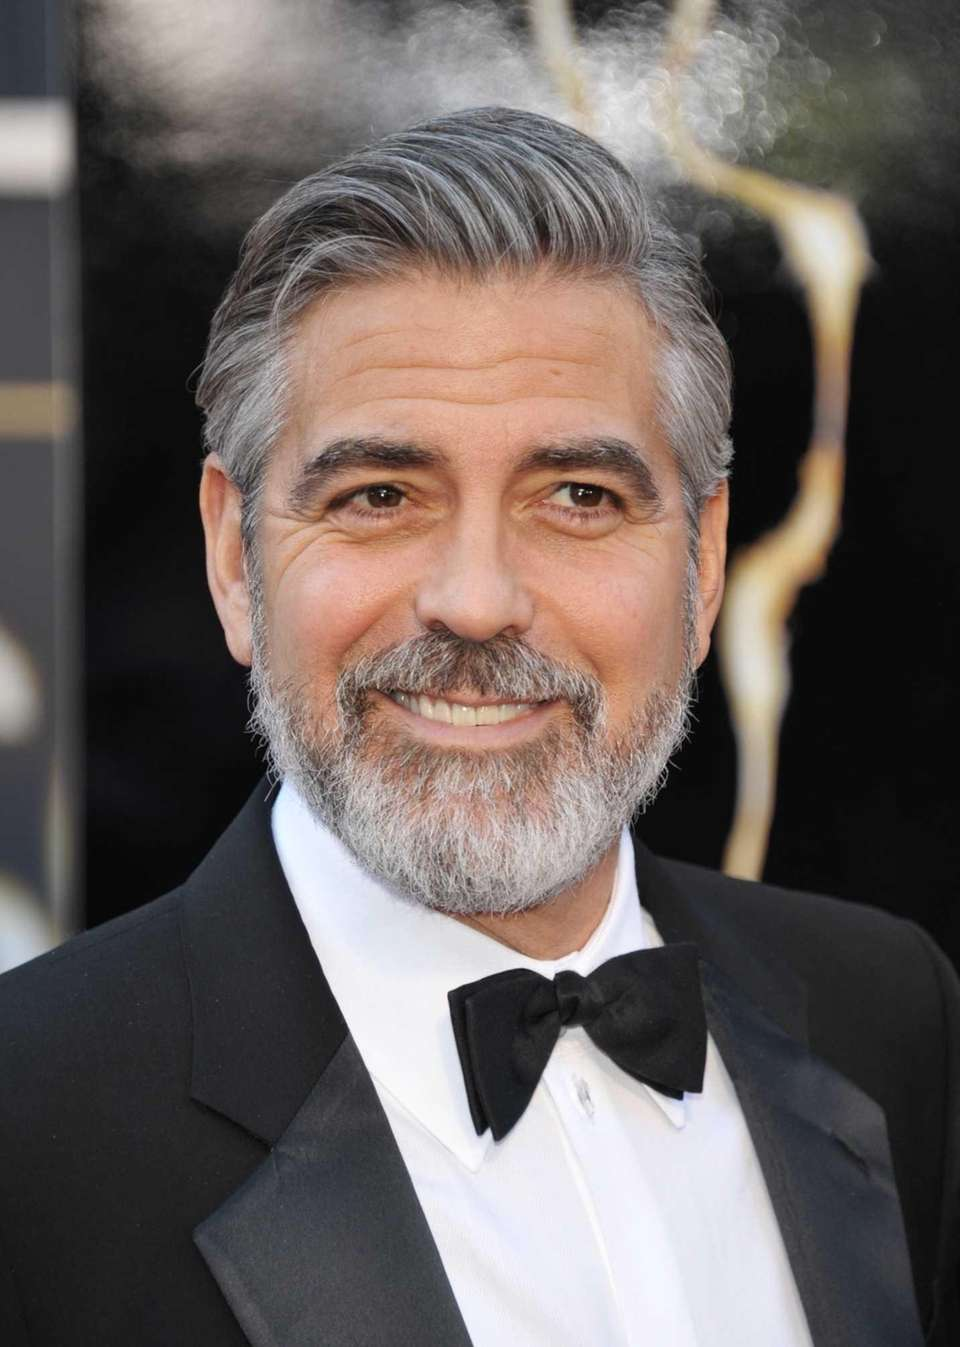 George Clooney, an Academy Award-winning producer and actor,